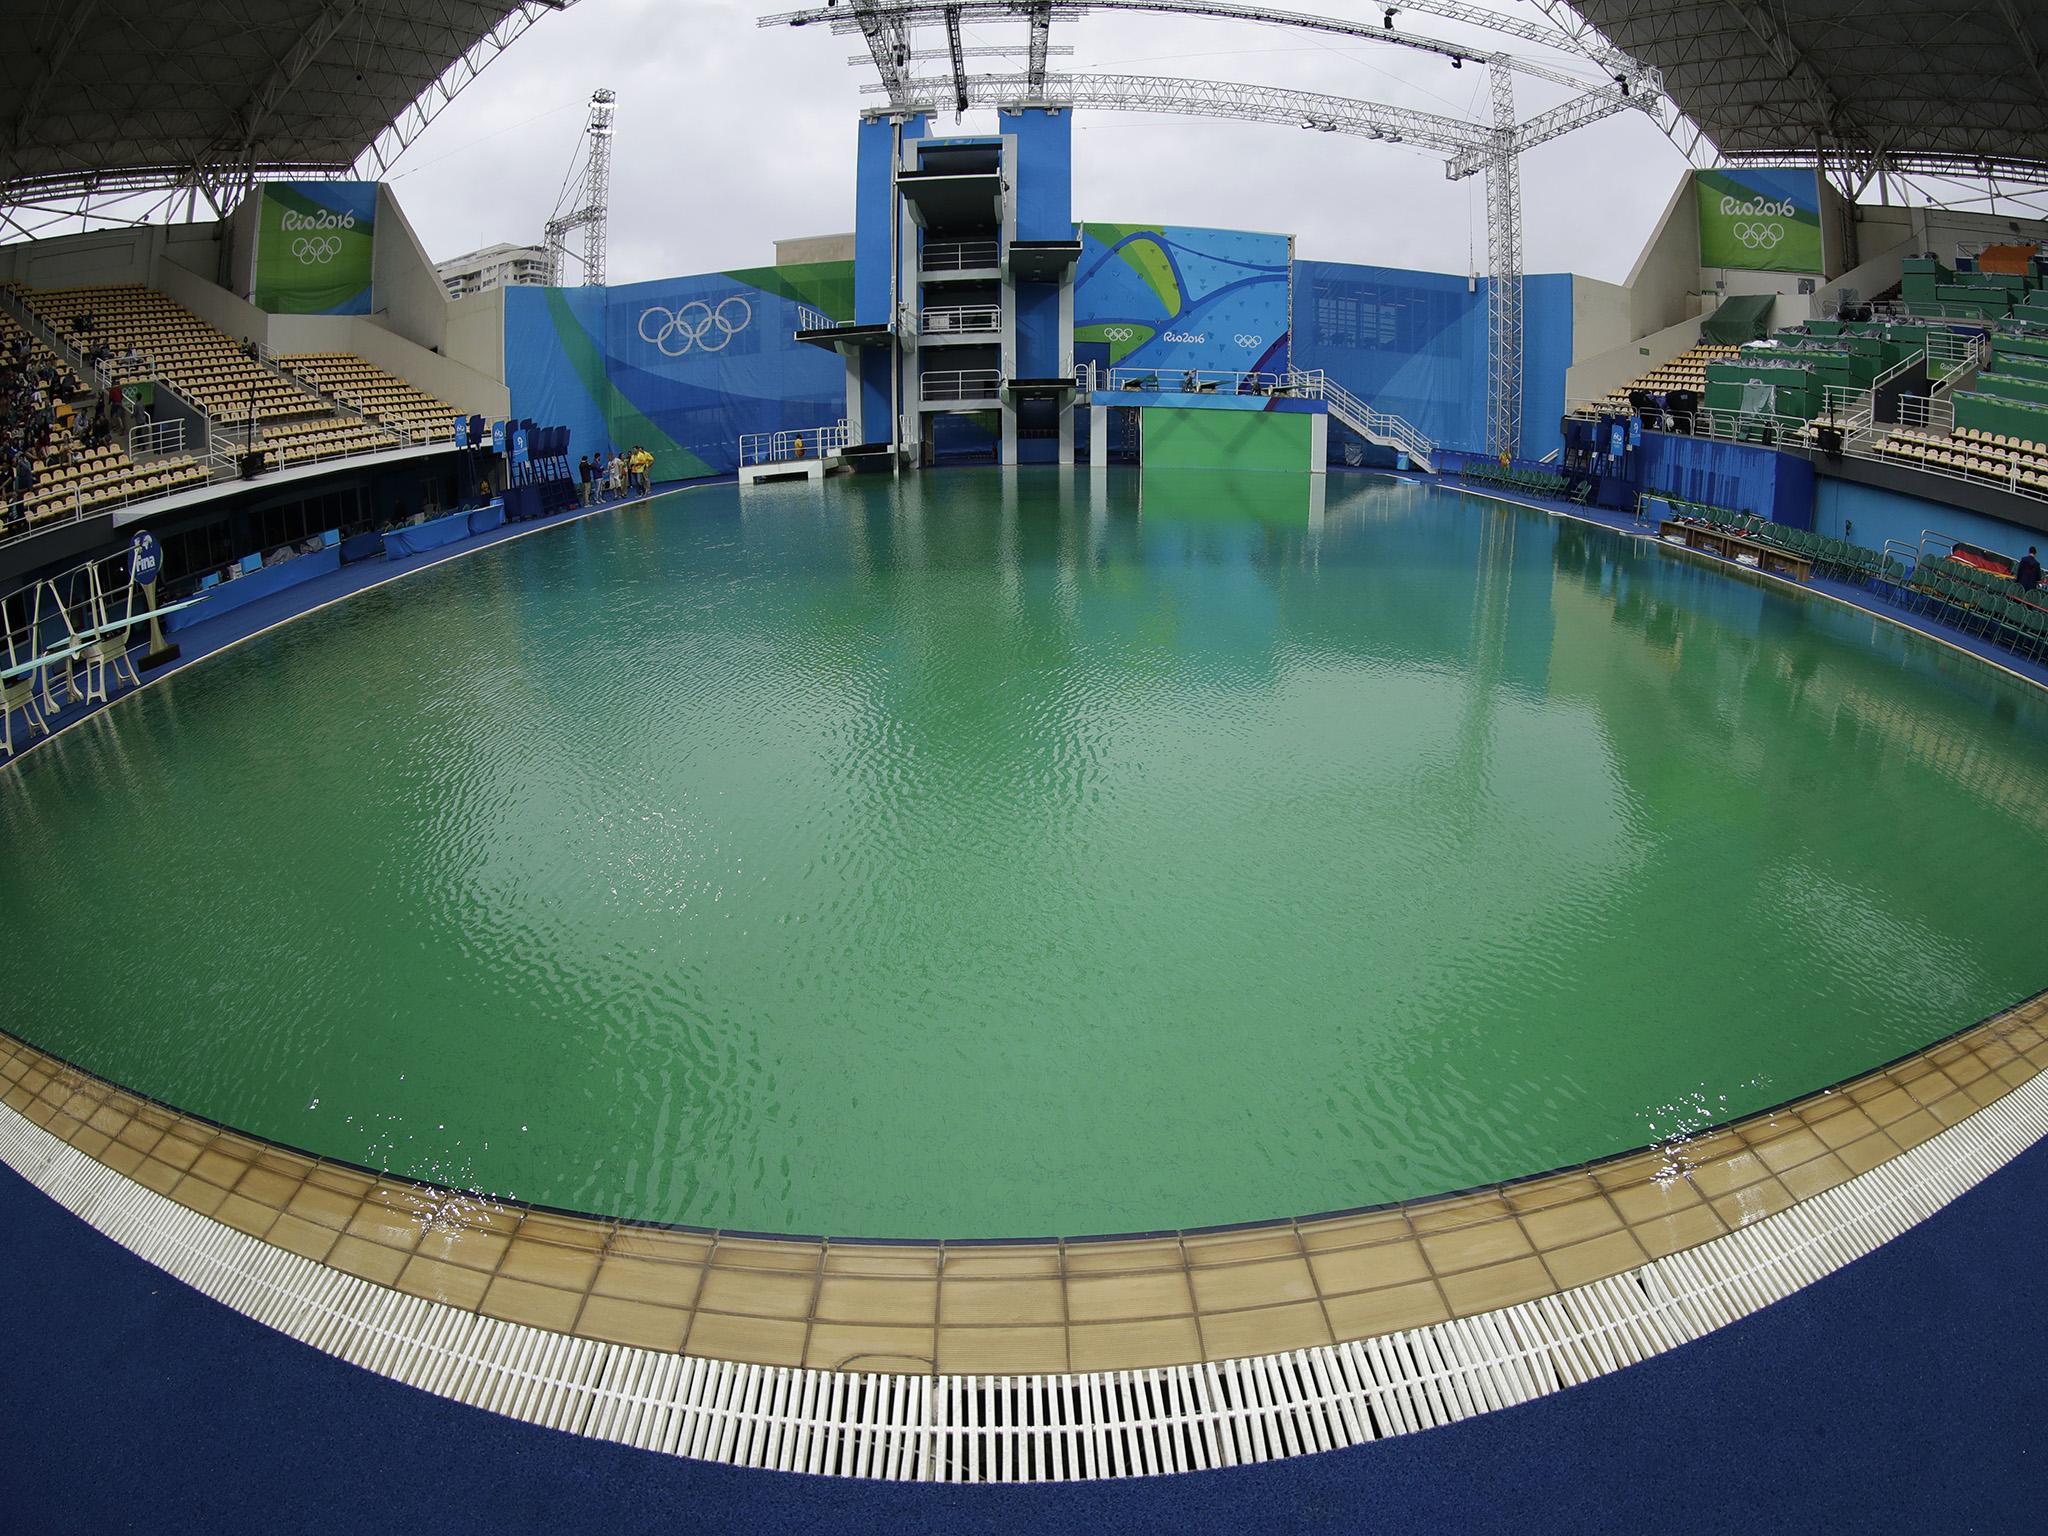 rio 2016 green olympic pool drained as organisers reveal hydrogen peroxide caused colour change the independent - Olympic Swimming Pool 2016